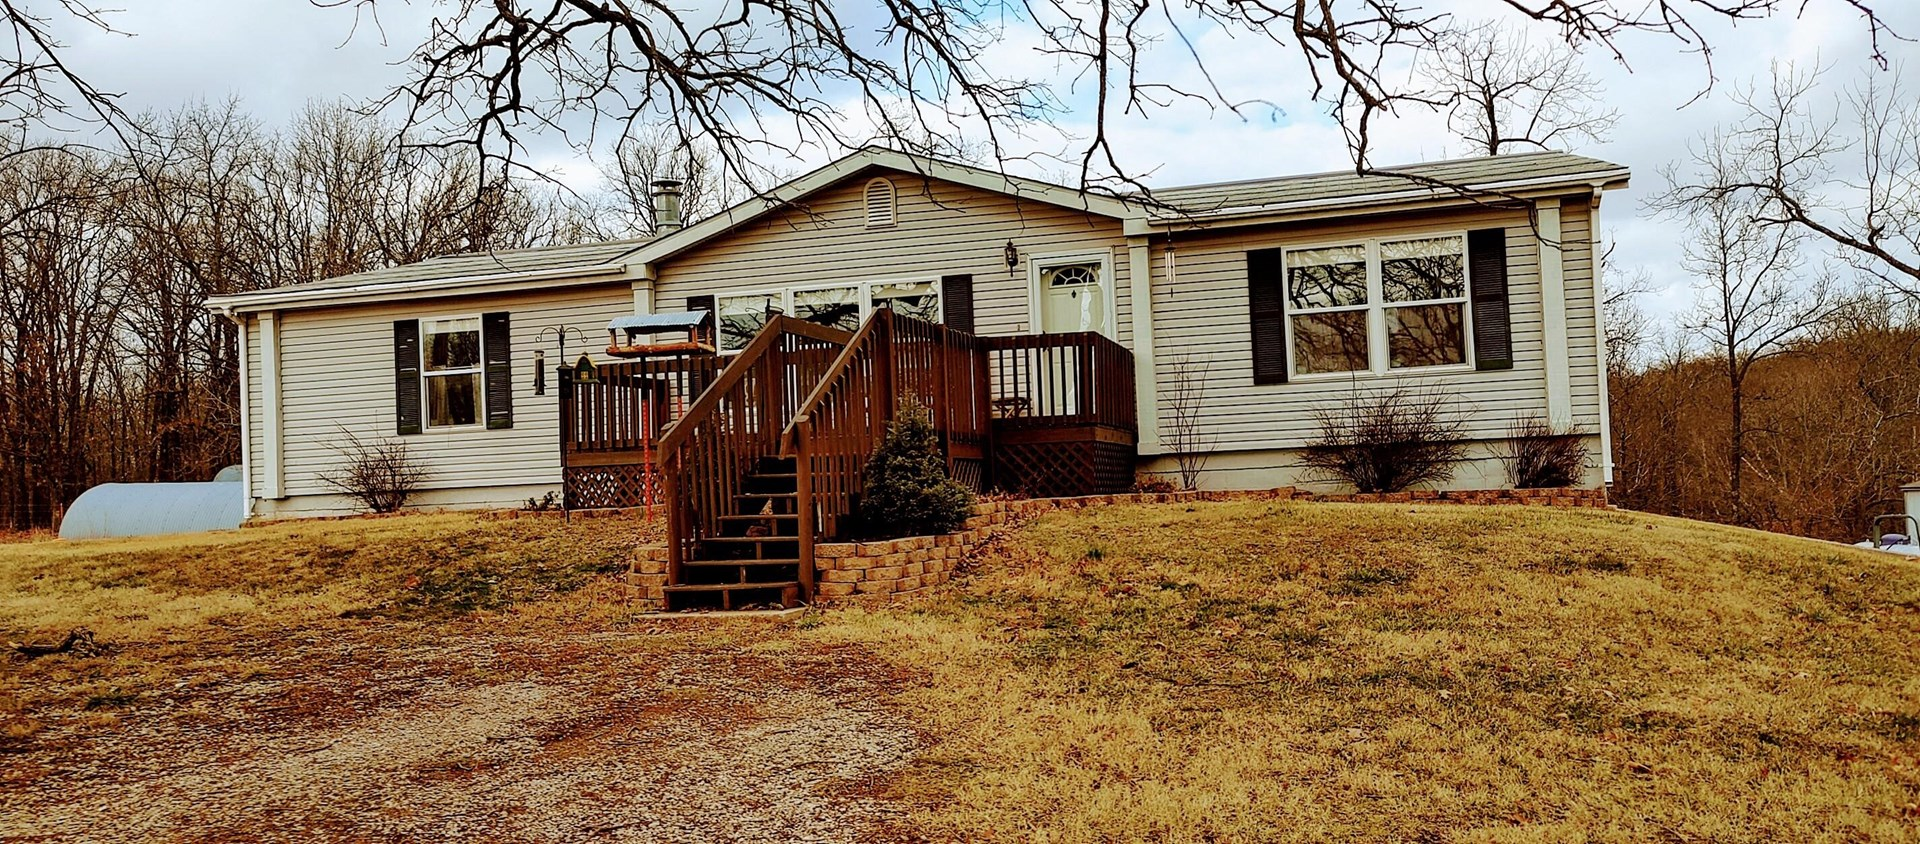 Updated Country Home on Small Acreage, Fenced with a View